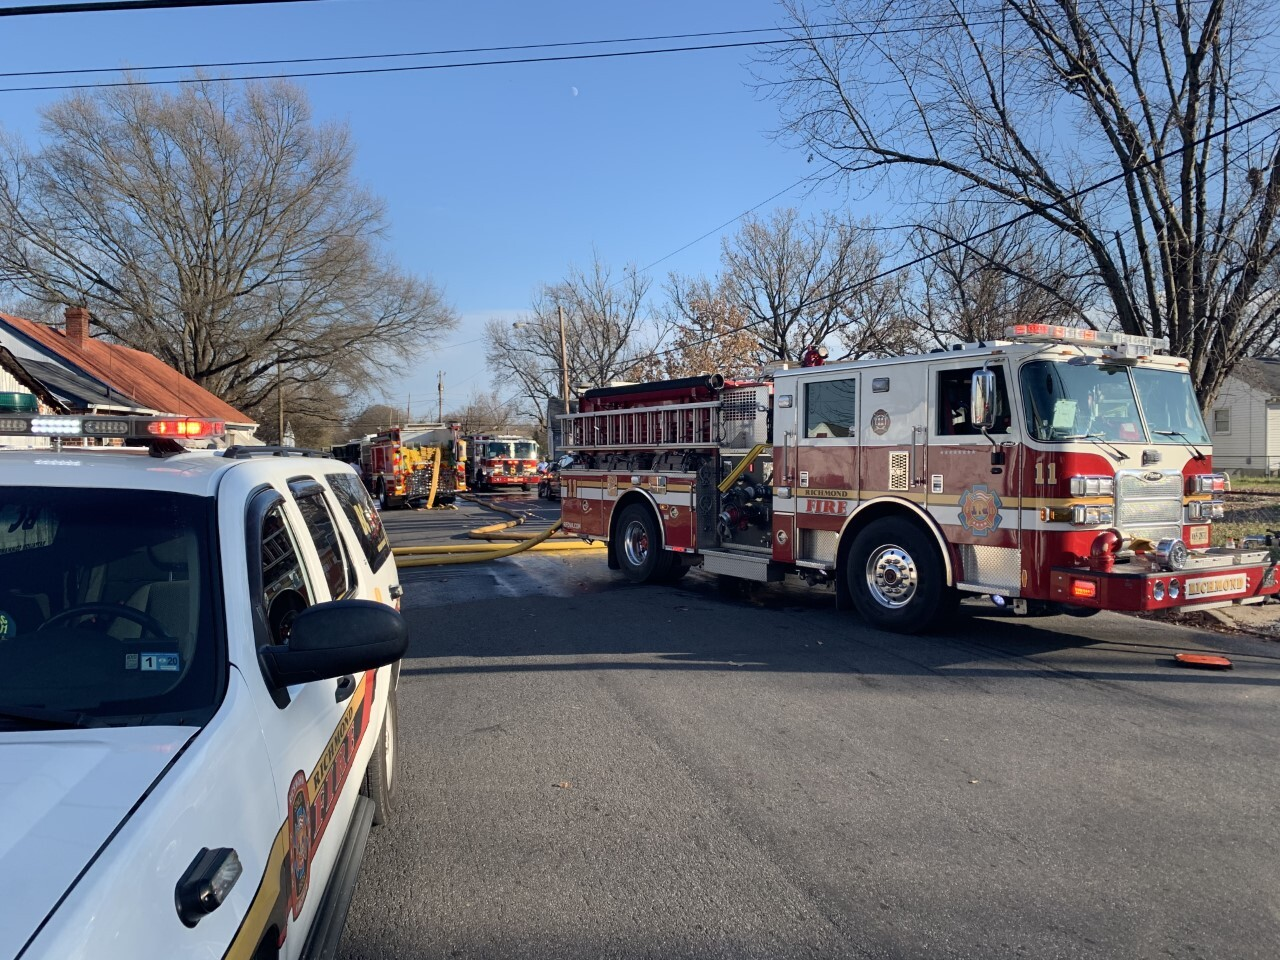 Photos: East End house fire started in back bedroom, crewssay